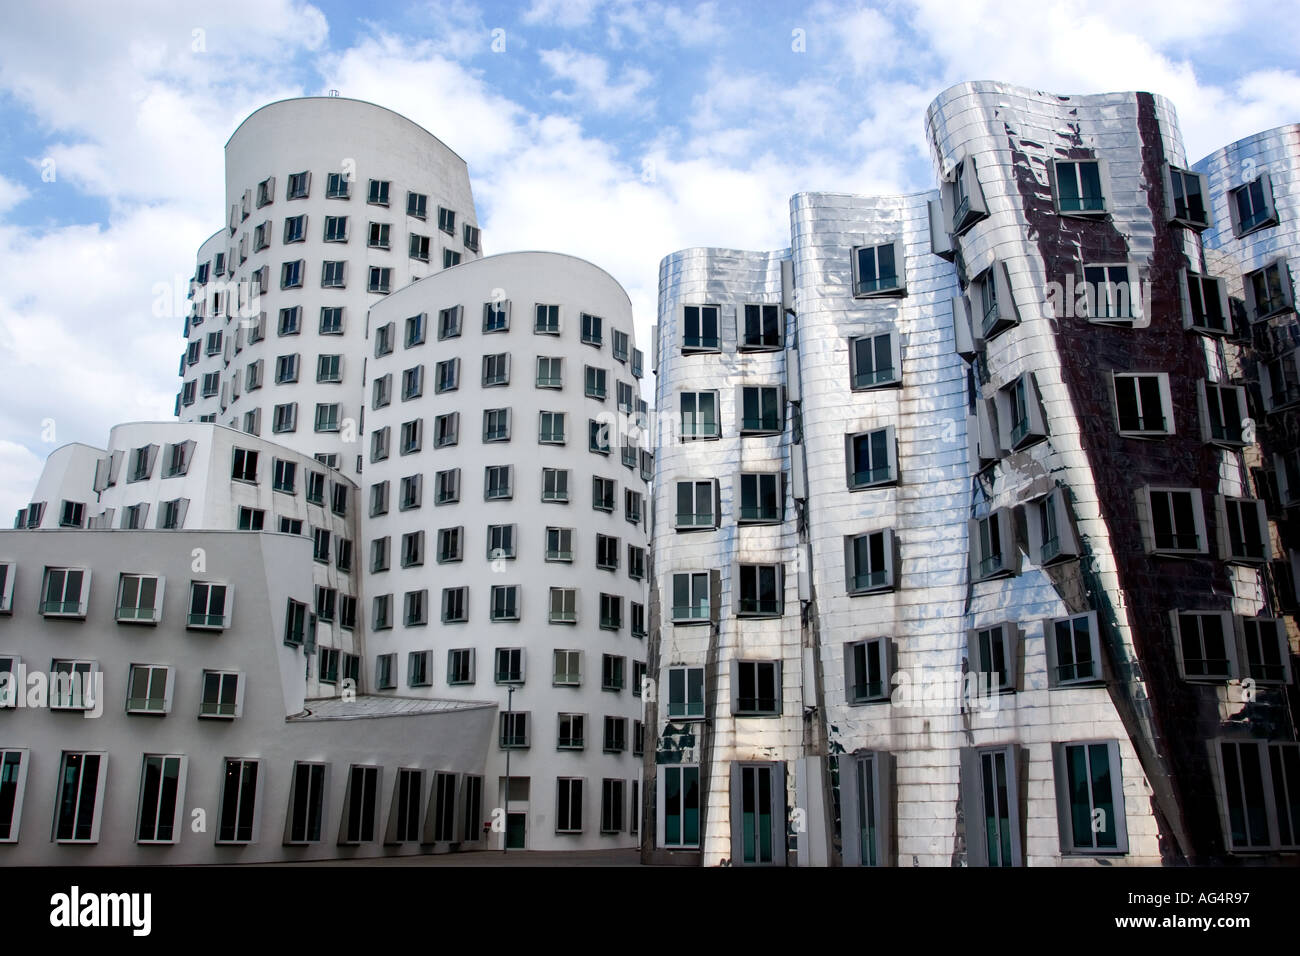 Germany Dusseldorf The Neuer Zollhof buildings by Frank Gehry at the Medienhafen - Stock Image